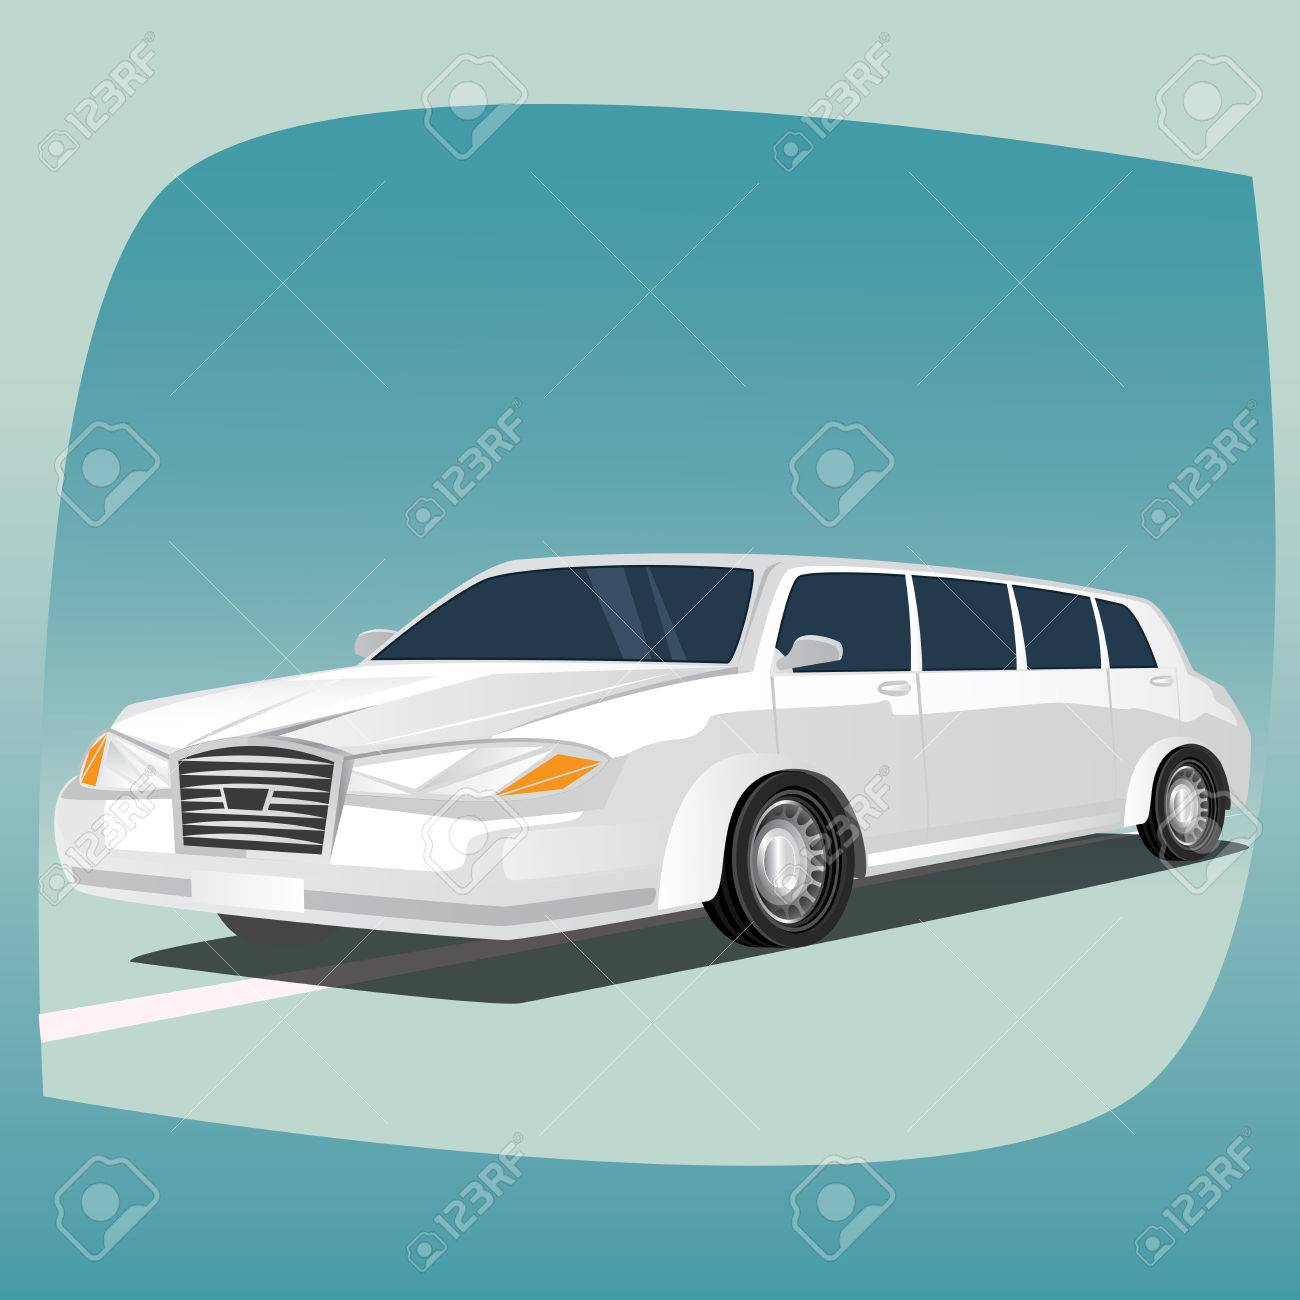 Isolated, detailed images of three-dimensional white limousine, luxury car with lengthened wheelbase, main device of chauffeurs, in cartoon style. Side front view - 65964097